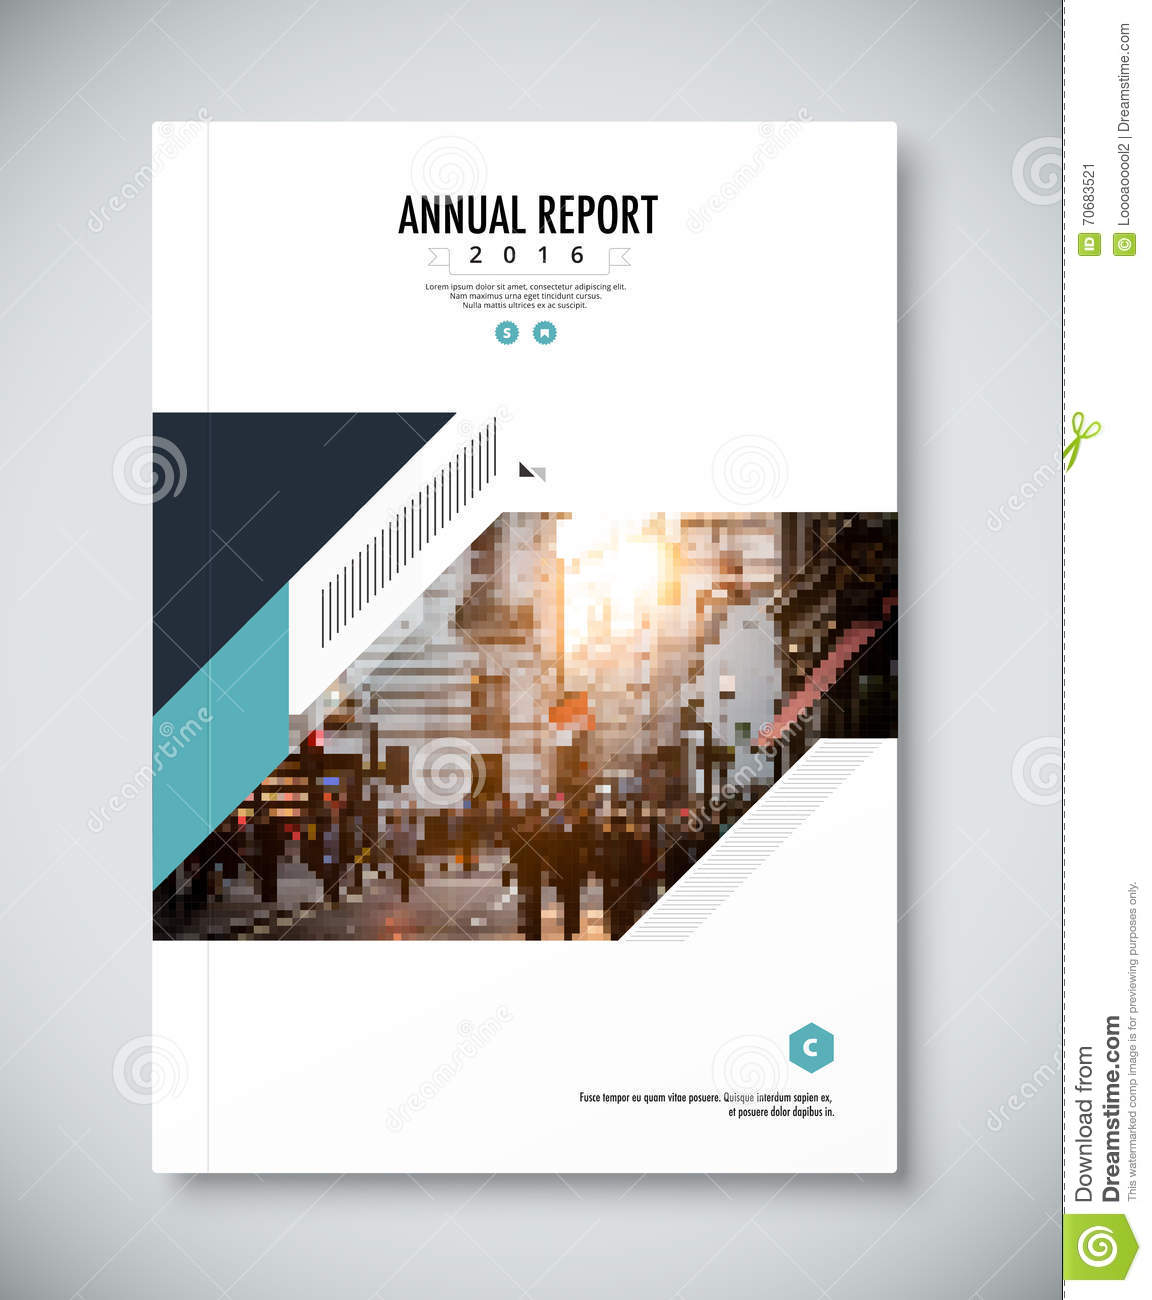 Corporate Annual Report Template Design Corporate Business Docu .  Annual Reports Templates